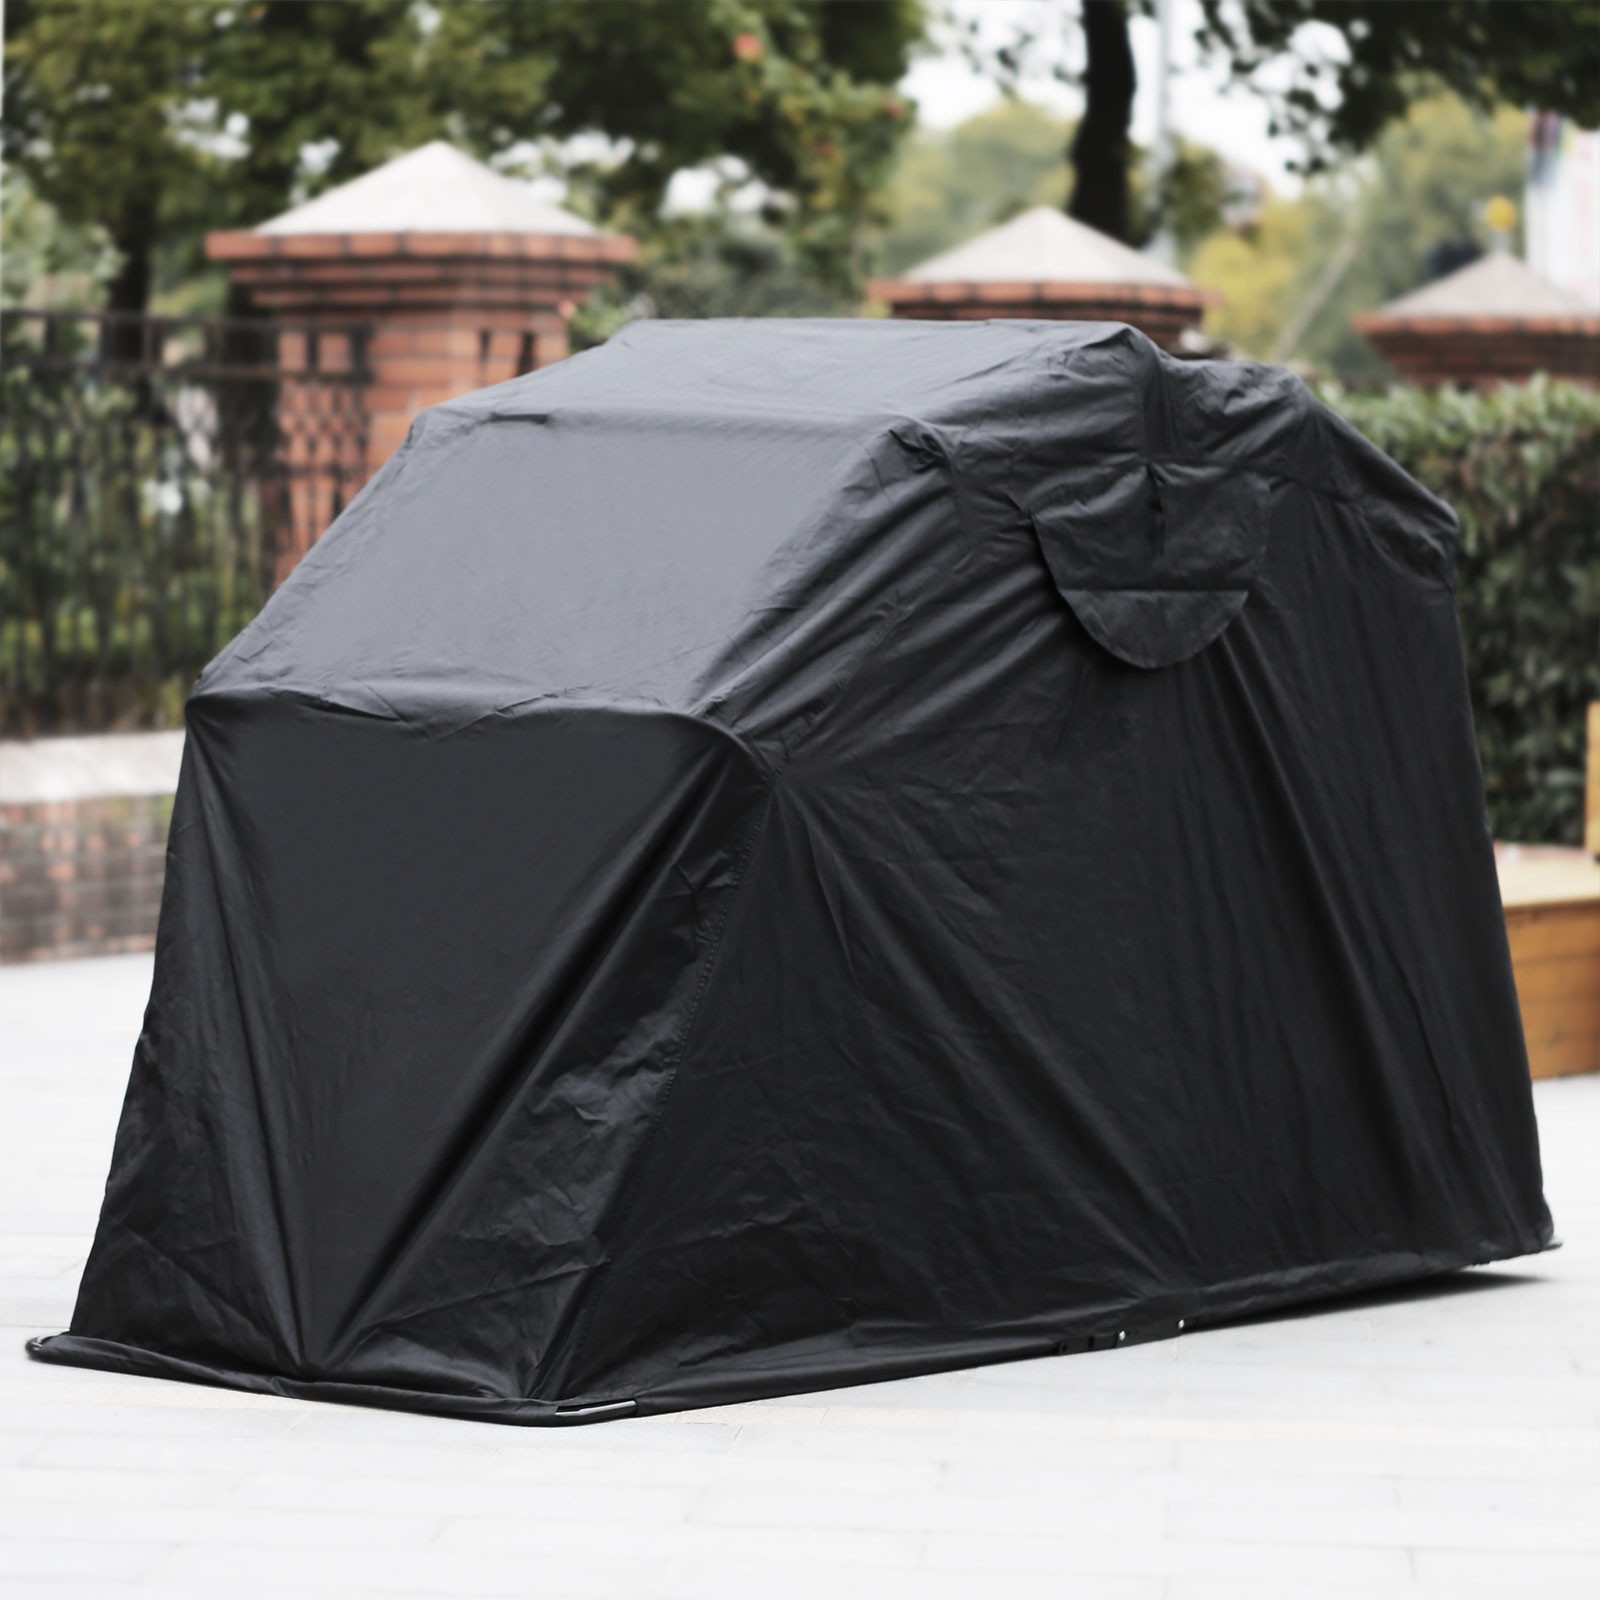 Heavy duty motorcycle shelter shed cover storage garage tent 241364348548 ebay - Motorcycle foldable garage tent cover ...